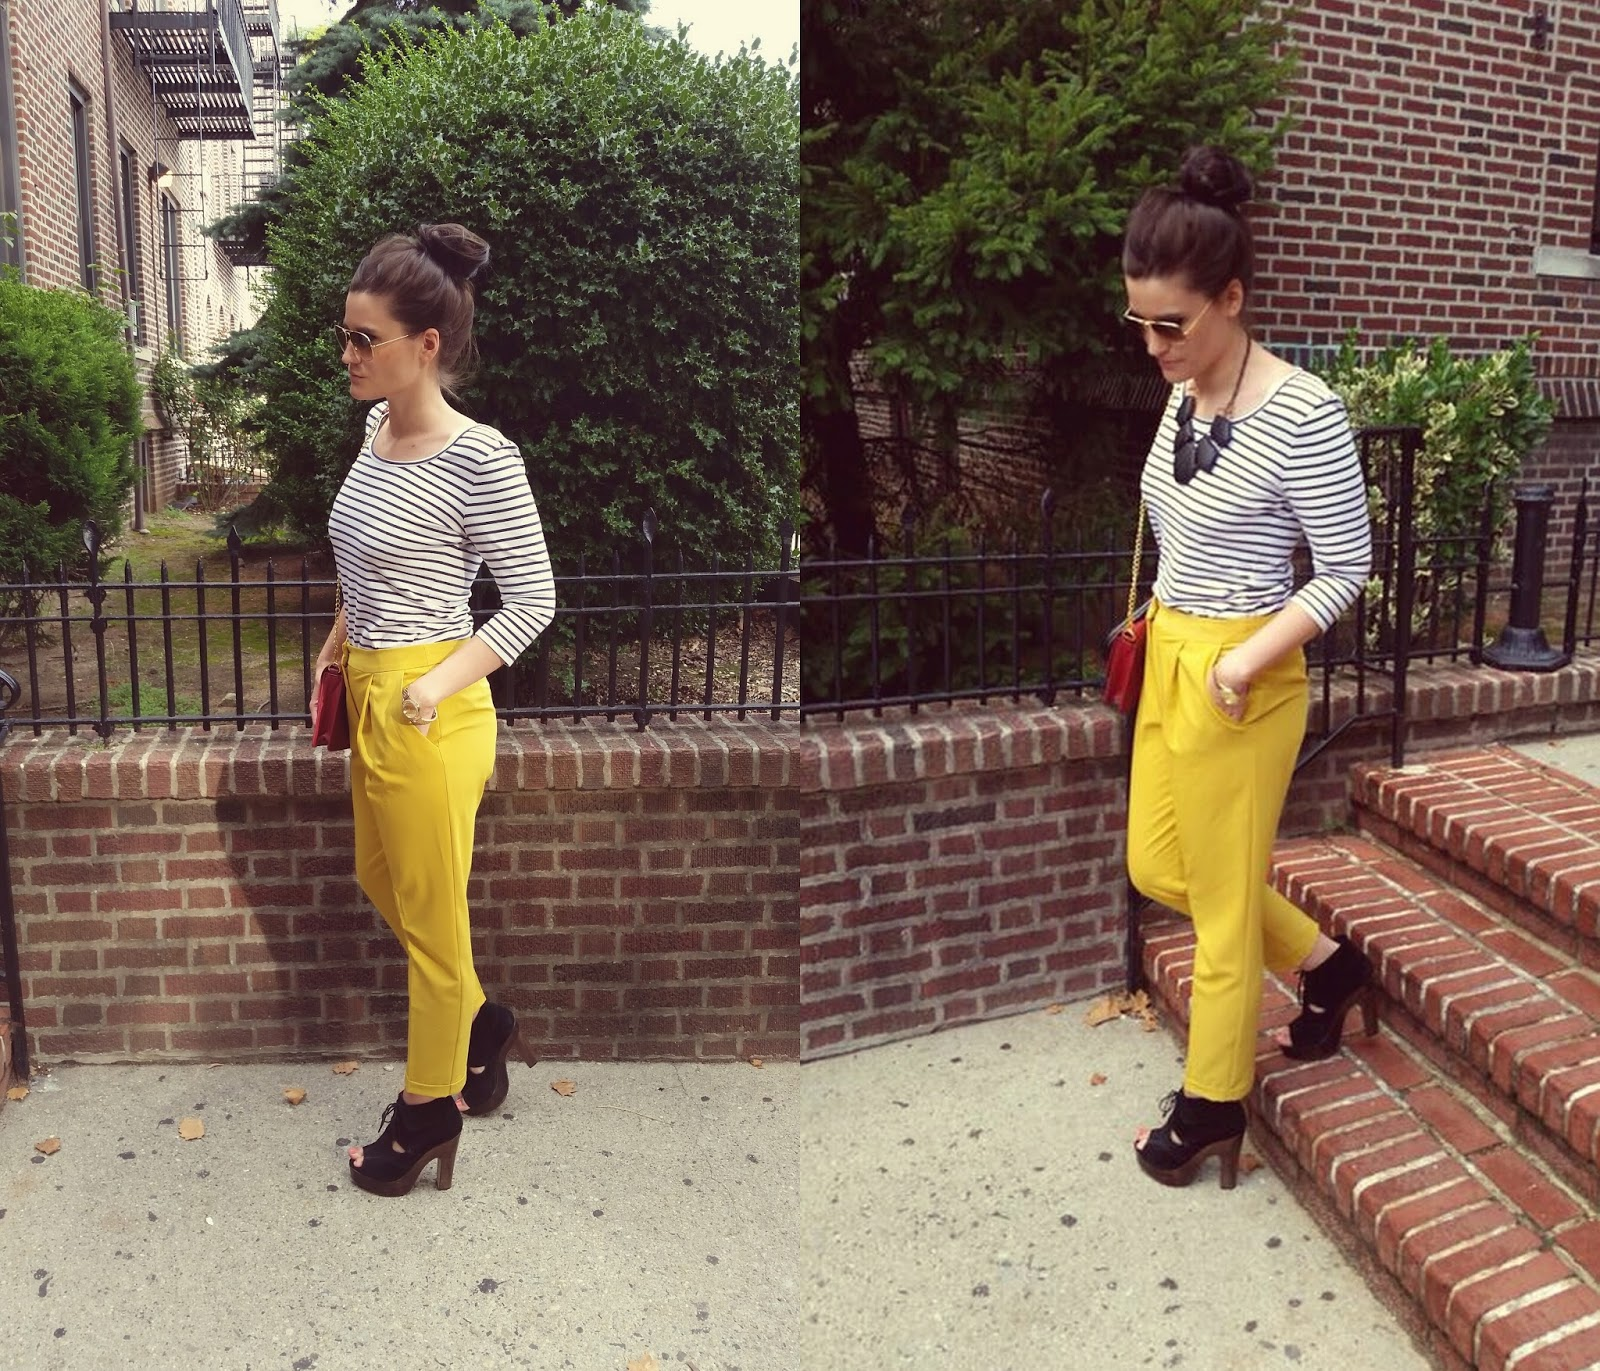 outfit fashion dagens outfit gule bukser yellow pants peg trousers stripes black white red purse gold watch necklace model brooklyn ootd fashion high heels chunky heels brunette rayban sunglasses